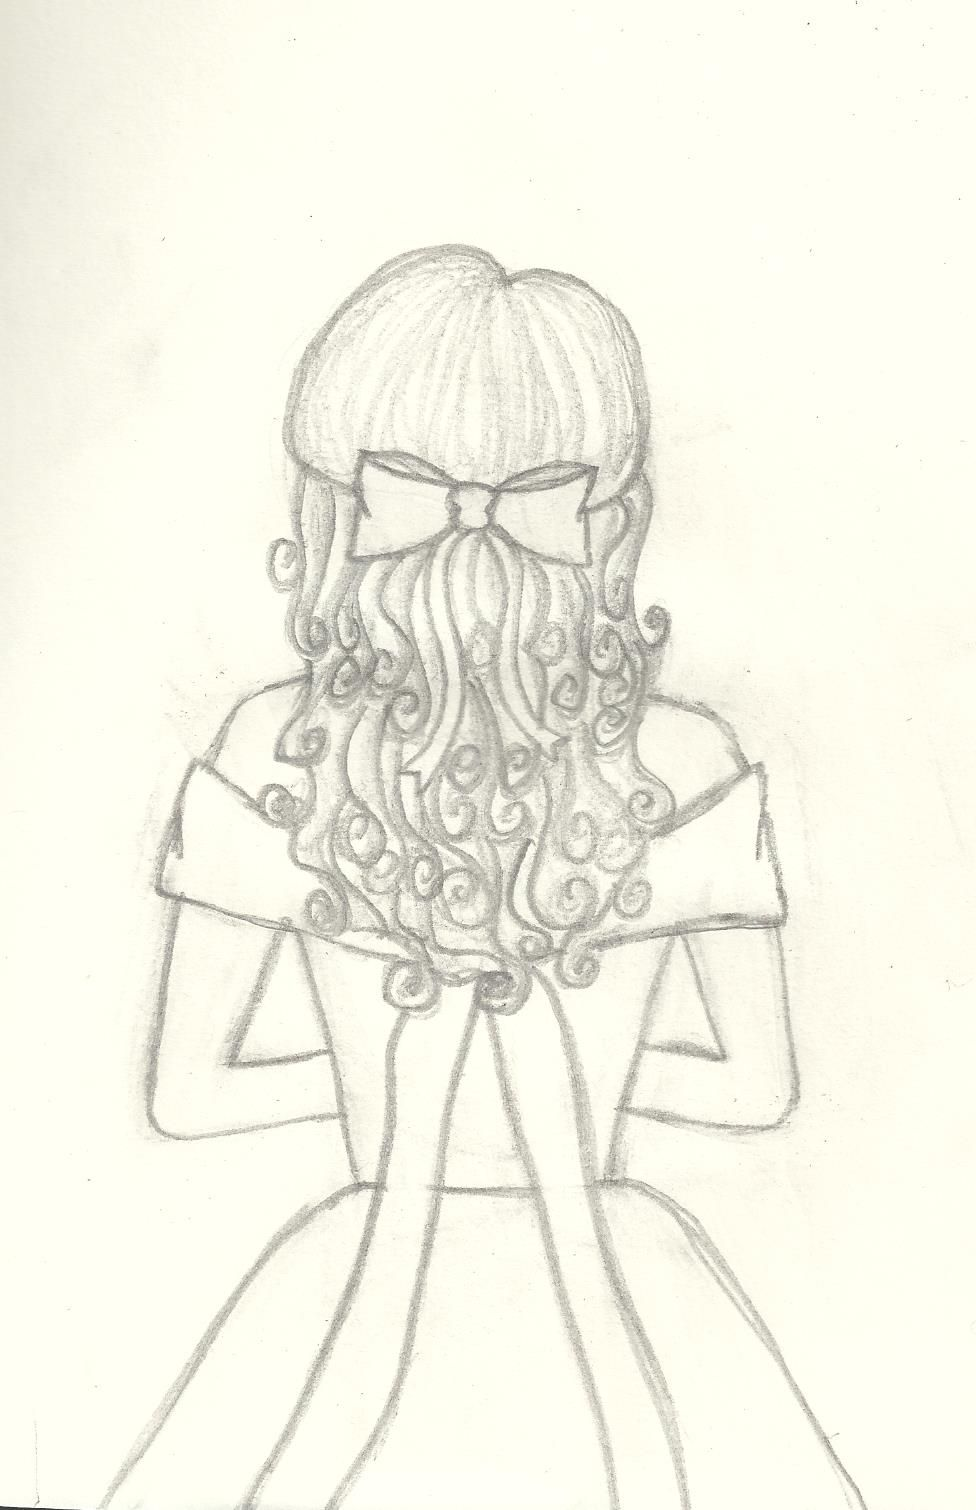 Curly Hair Girl With Bow Original Sketch By Kealani Back View Girl In Dress Sketch Art Girl With Bow Pr Art Sketches Curly Girl Hairstyles Girl Drawing